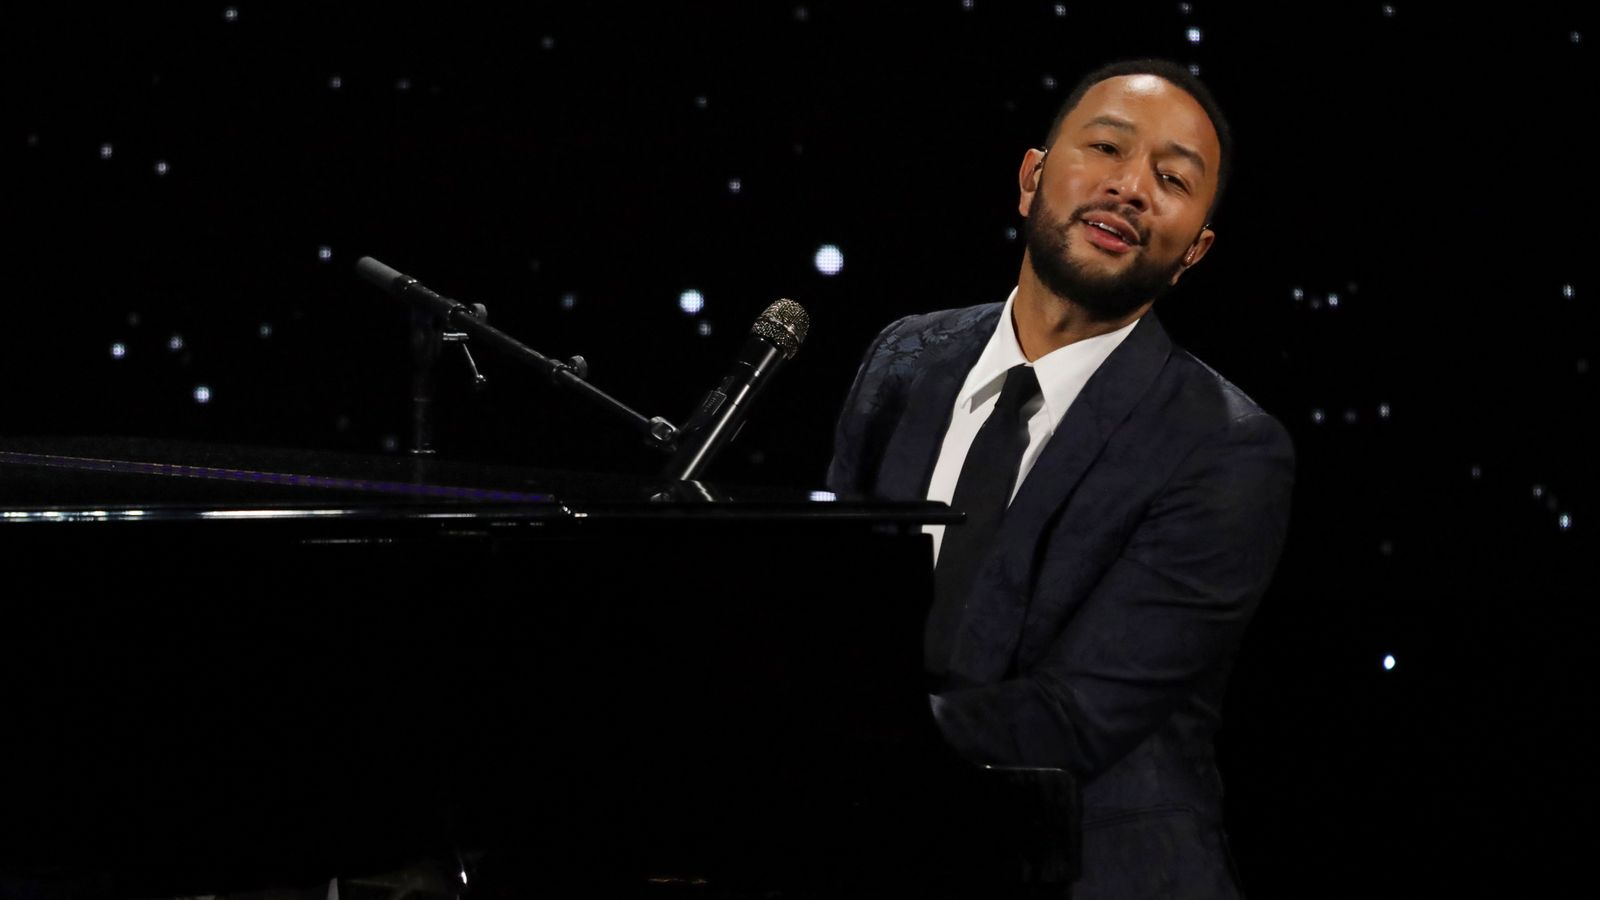 John Legend: This busker was singing one of his hits. Little did she know that he was in the audience